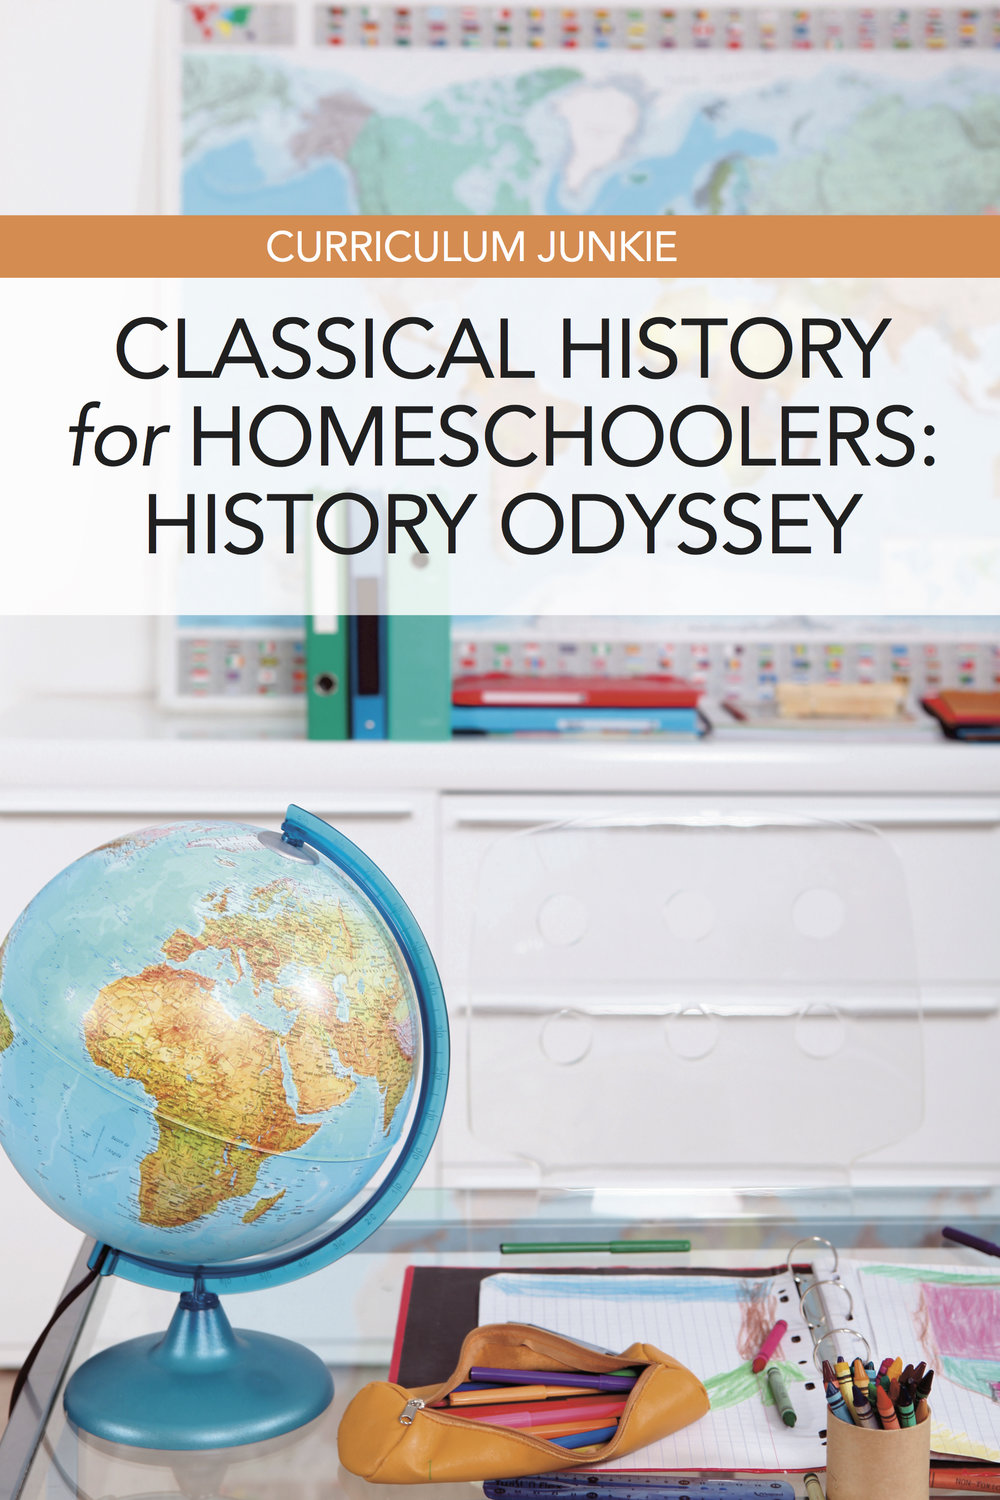 Classical History for Homeschoolers: History Odyssey